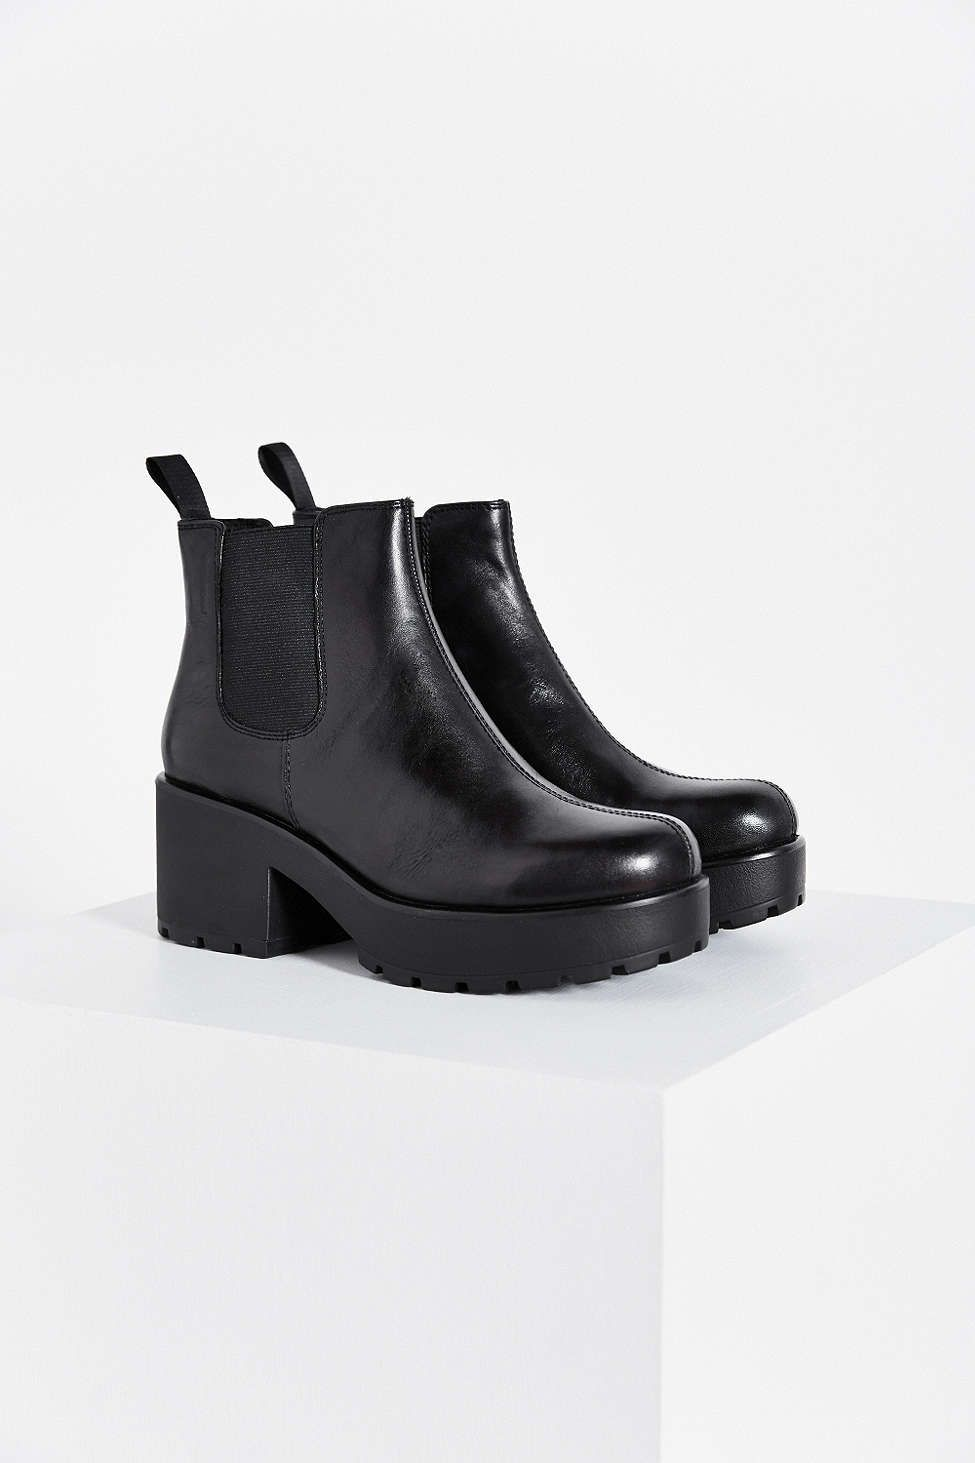 c168079d09a9 click image to get this! x Vagabond Boots, Boots Talon, Chunky Boots,